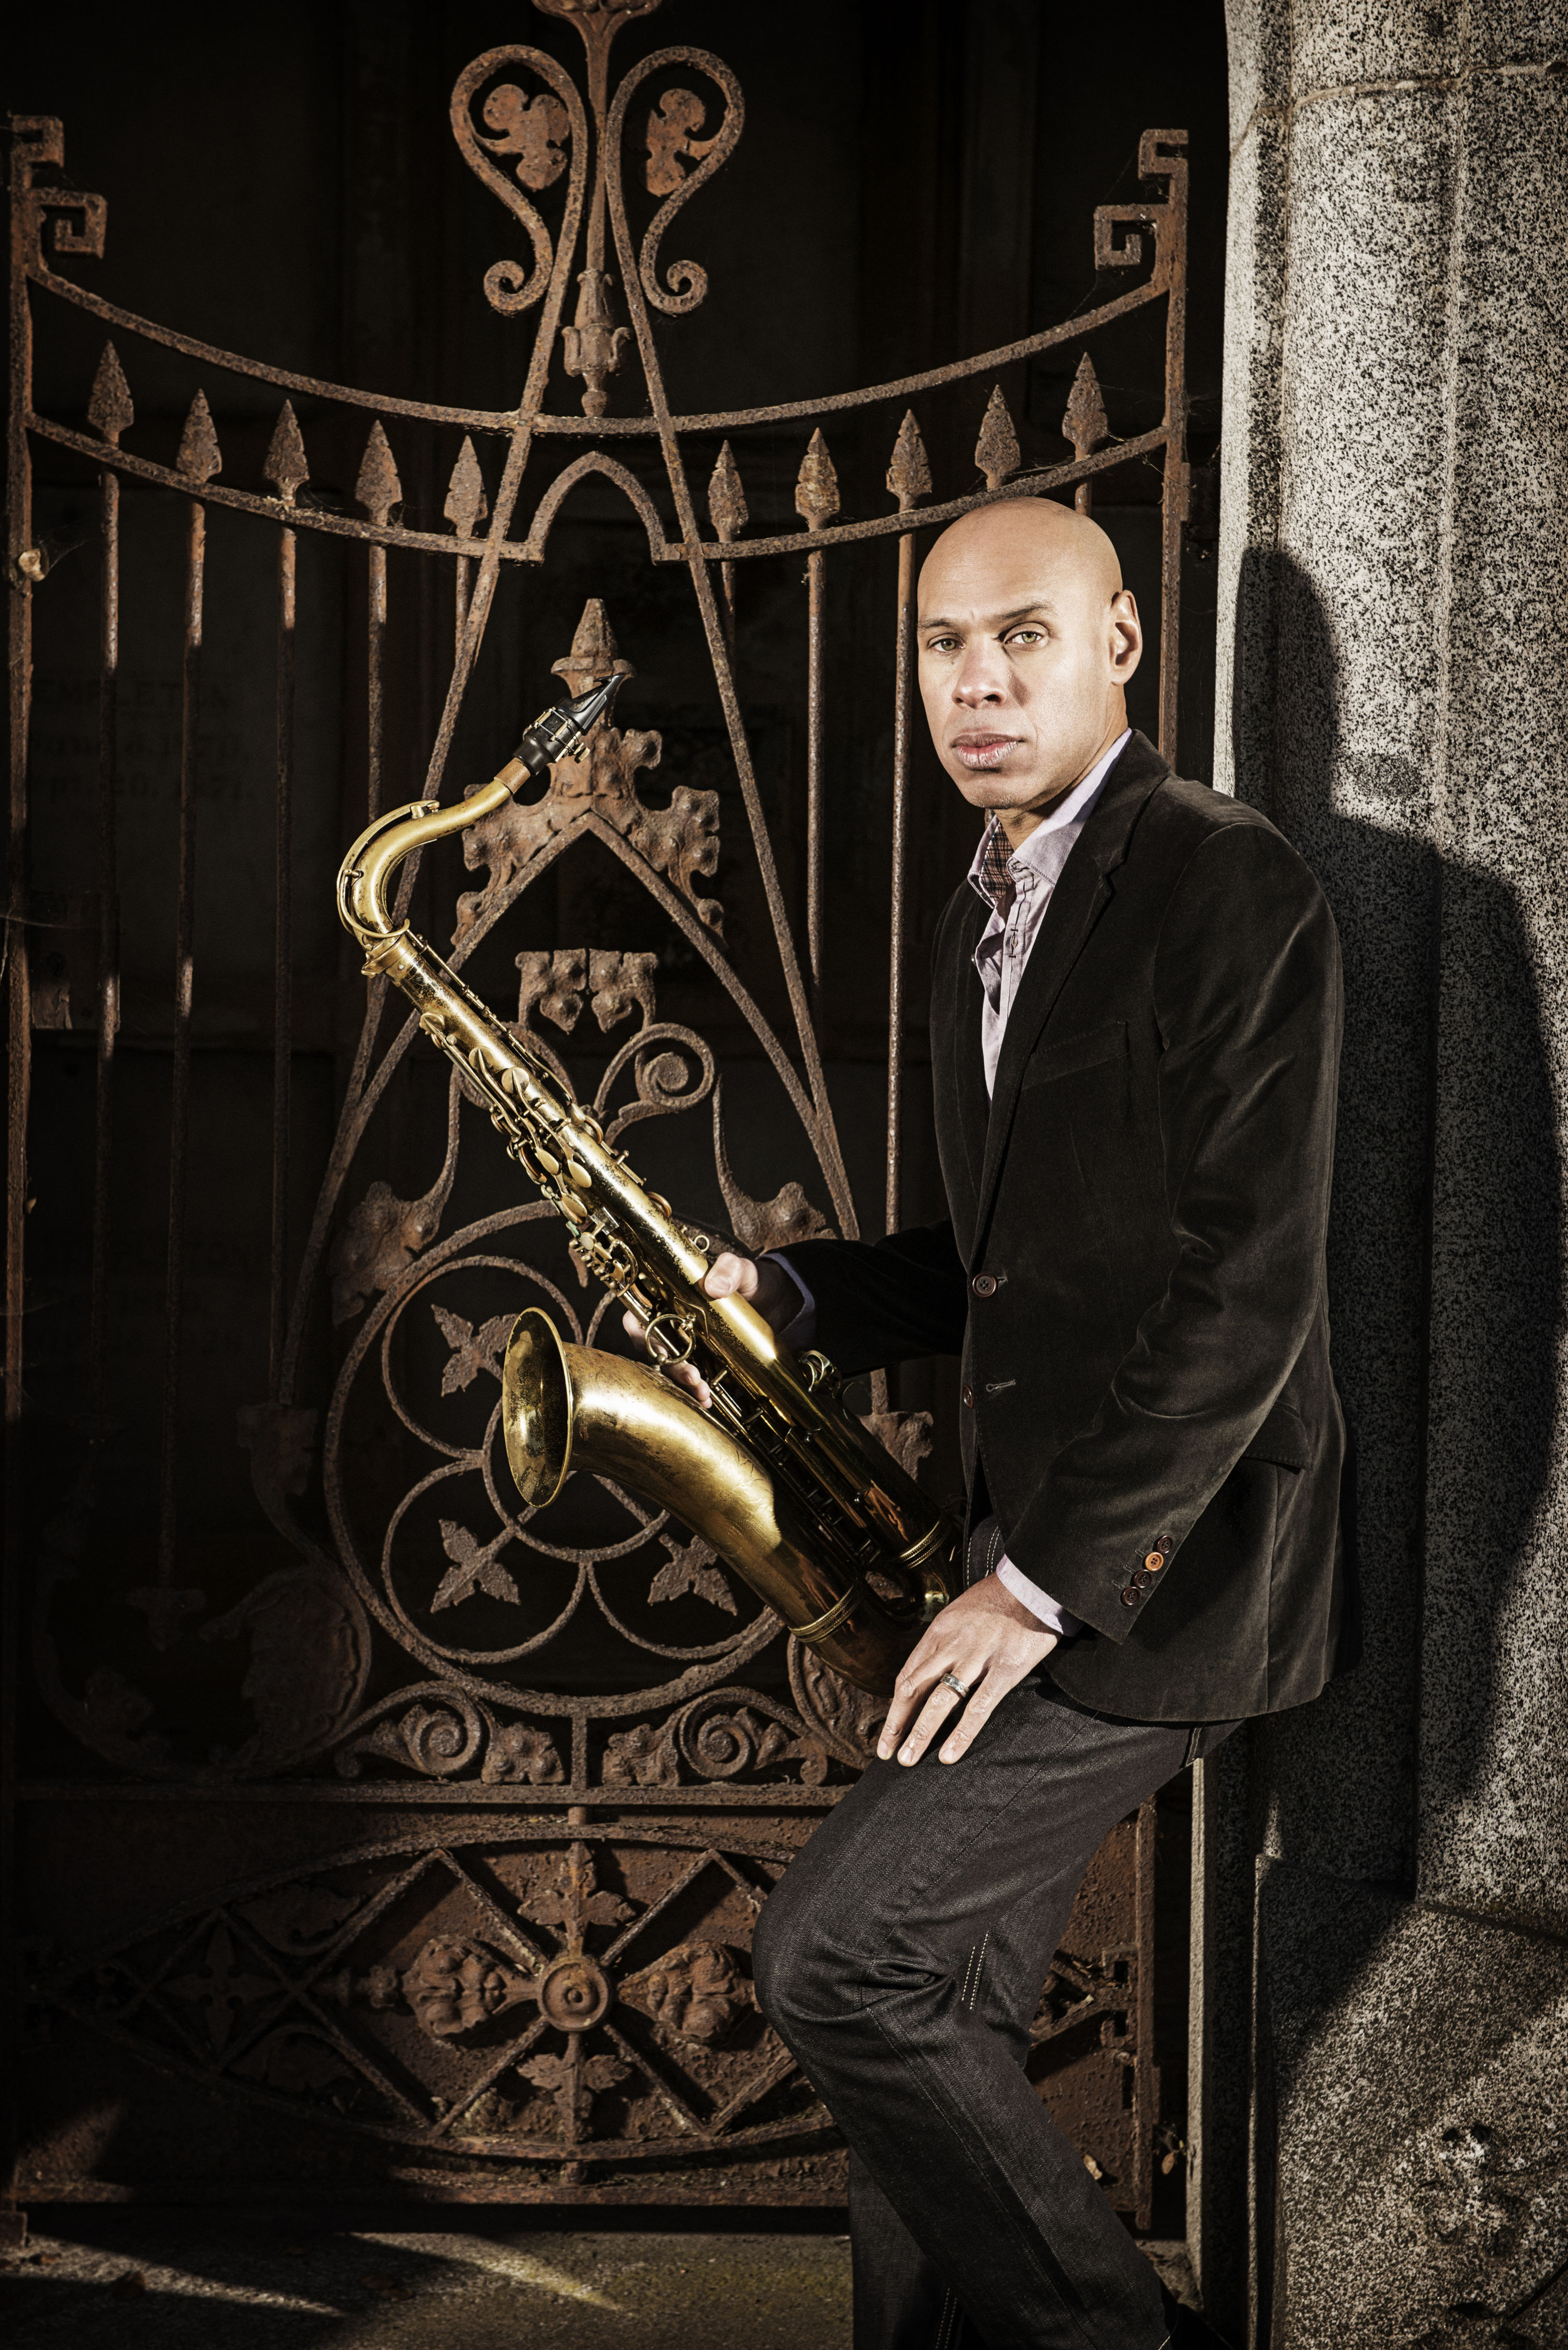 Photo Joshua Redman 3JRJayBlakesberg 1364246353